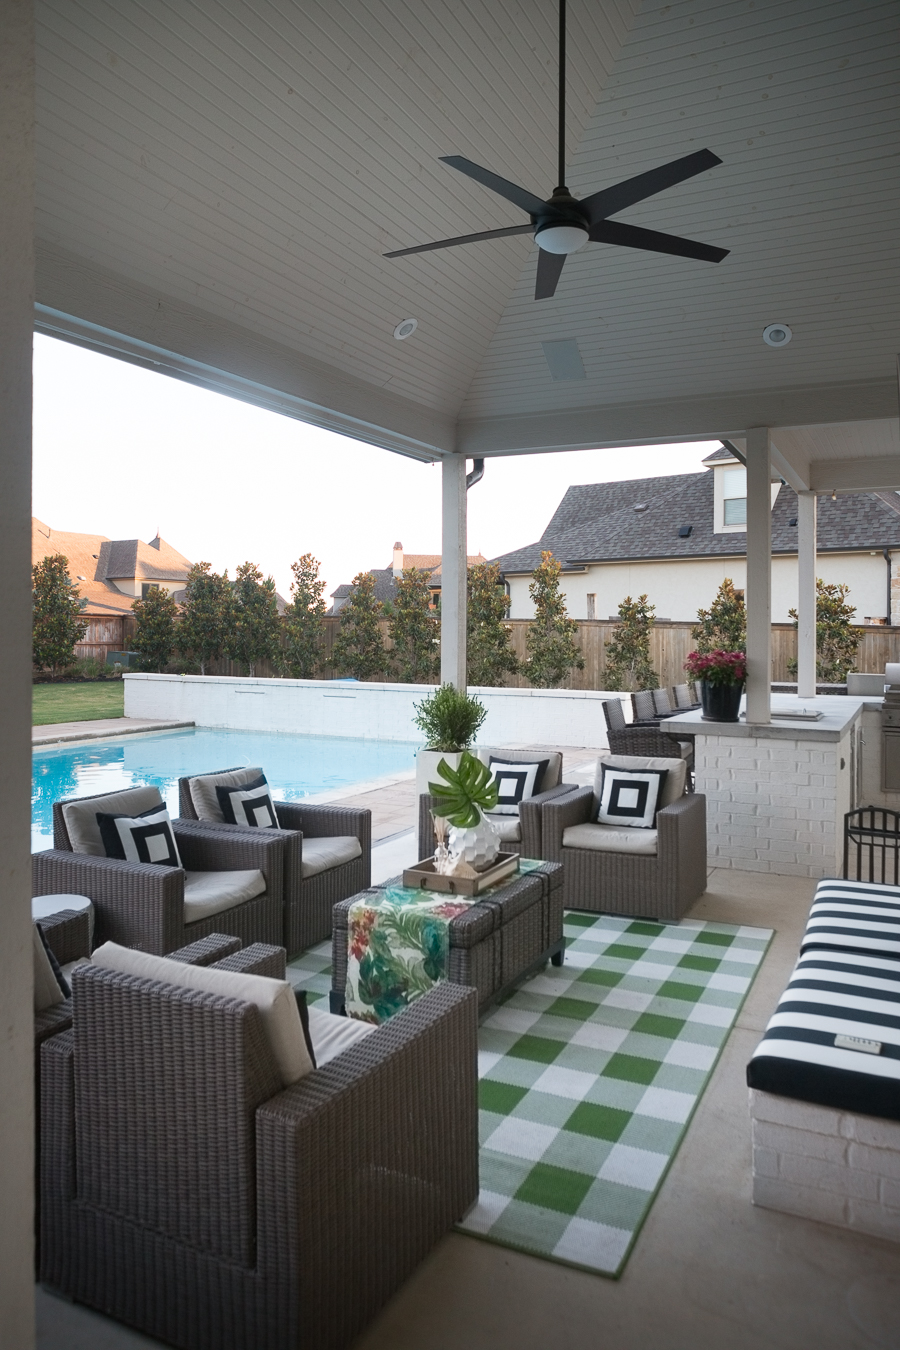 How to Design a Beautiful Pool and Outdoor Living Area ... on Cc Outdoor Living id=76590